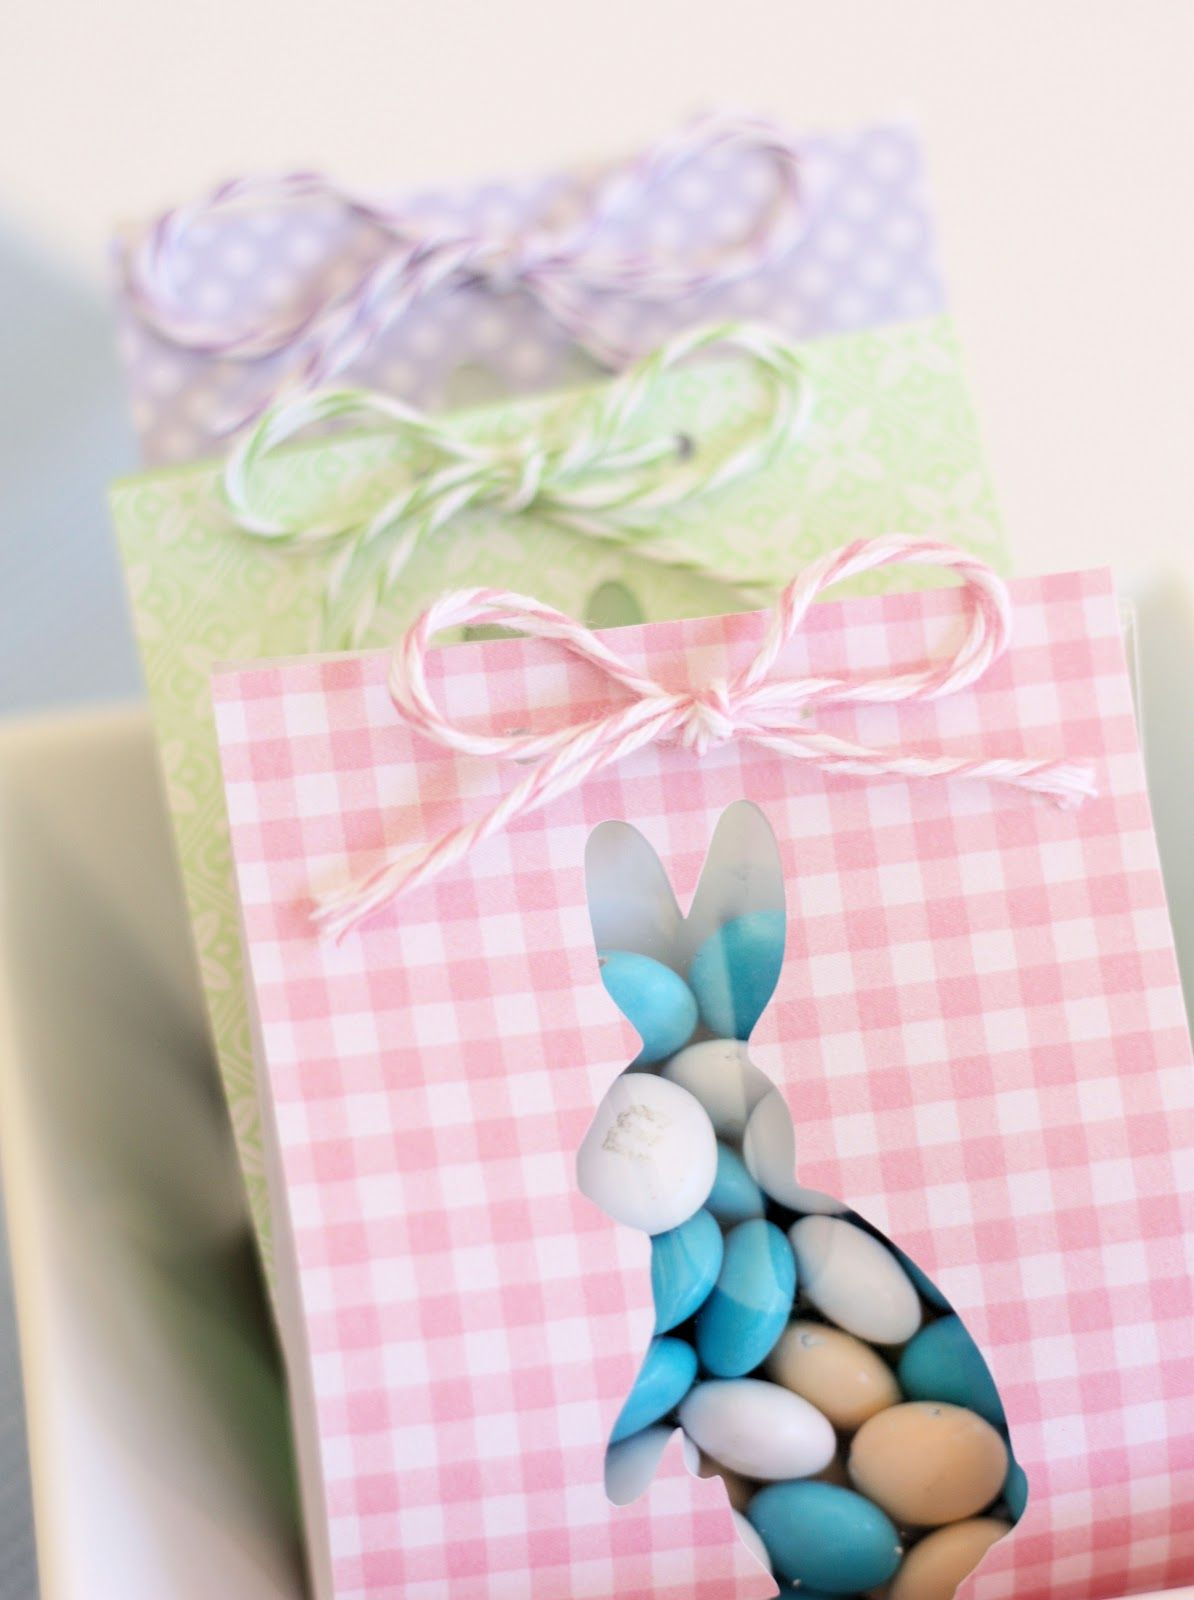 Bunny gingham bagsmartha stewart easter pinterest easter bunny gingham bagsmartha stewart easter candyeaster gifteaster ideasgift negle Choice Image